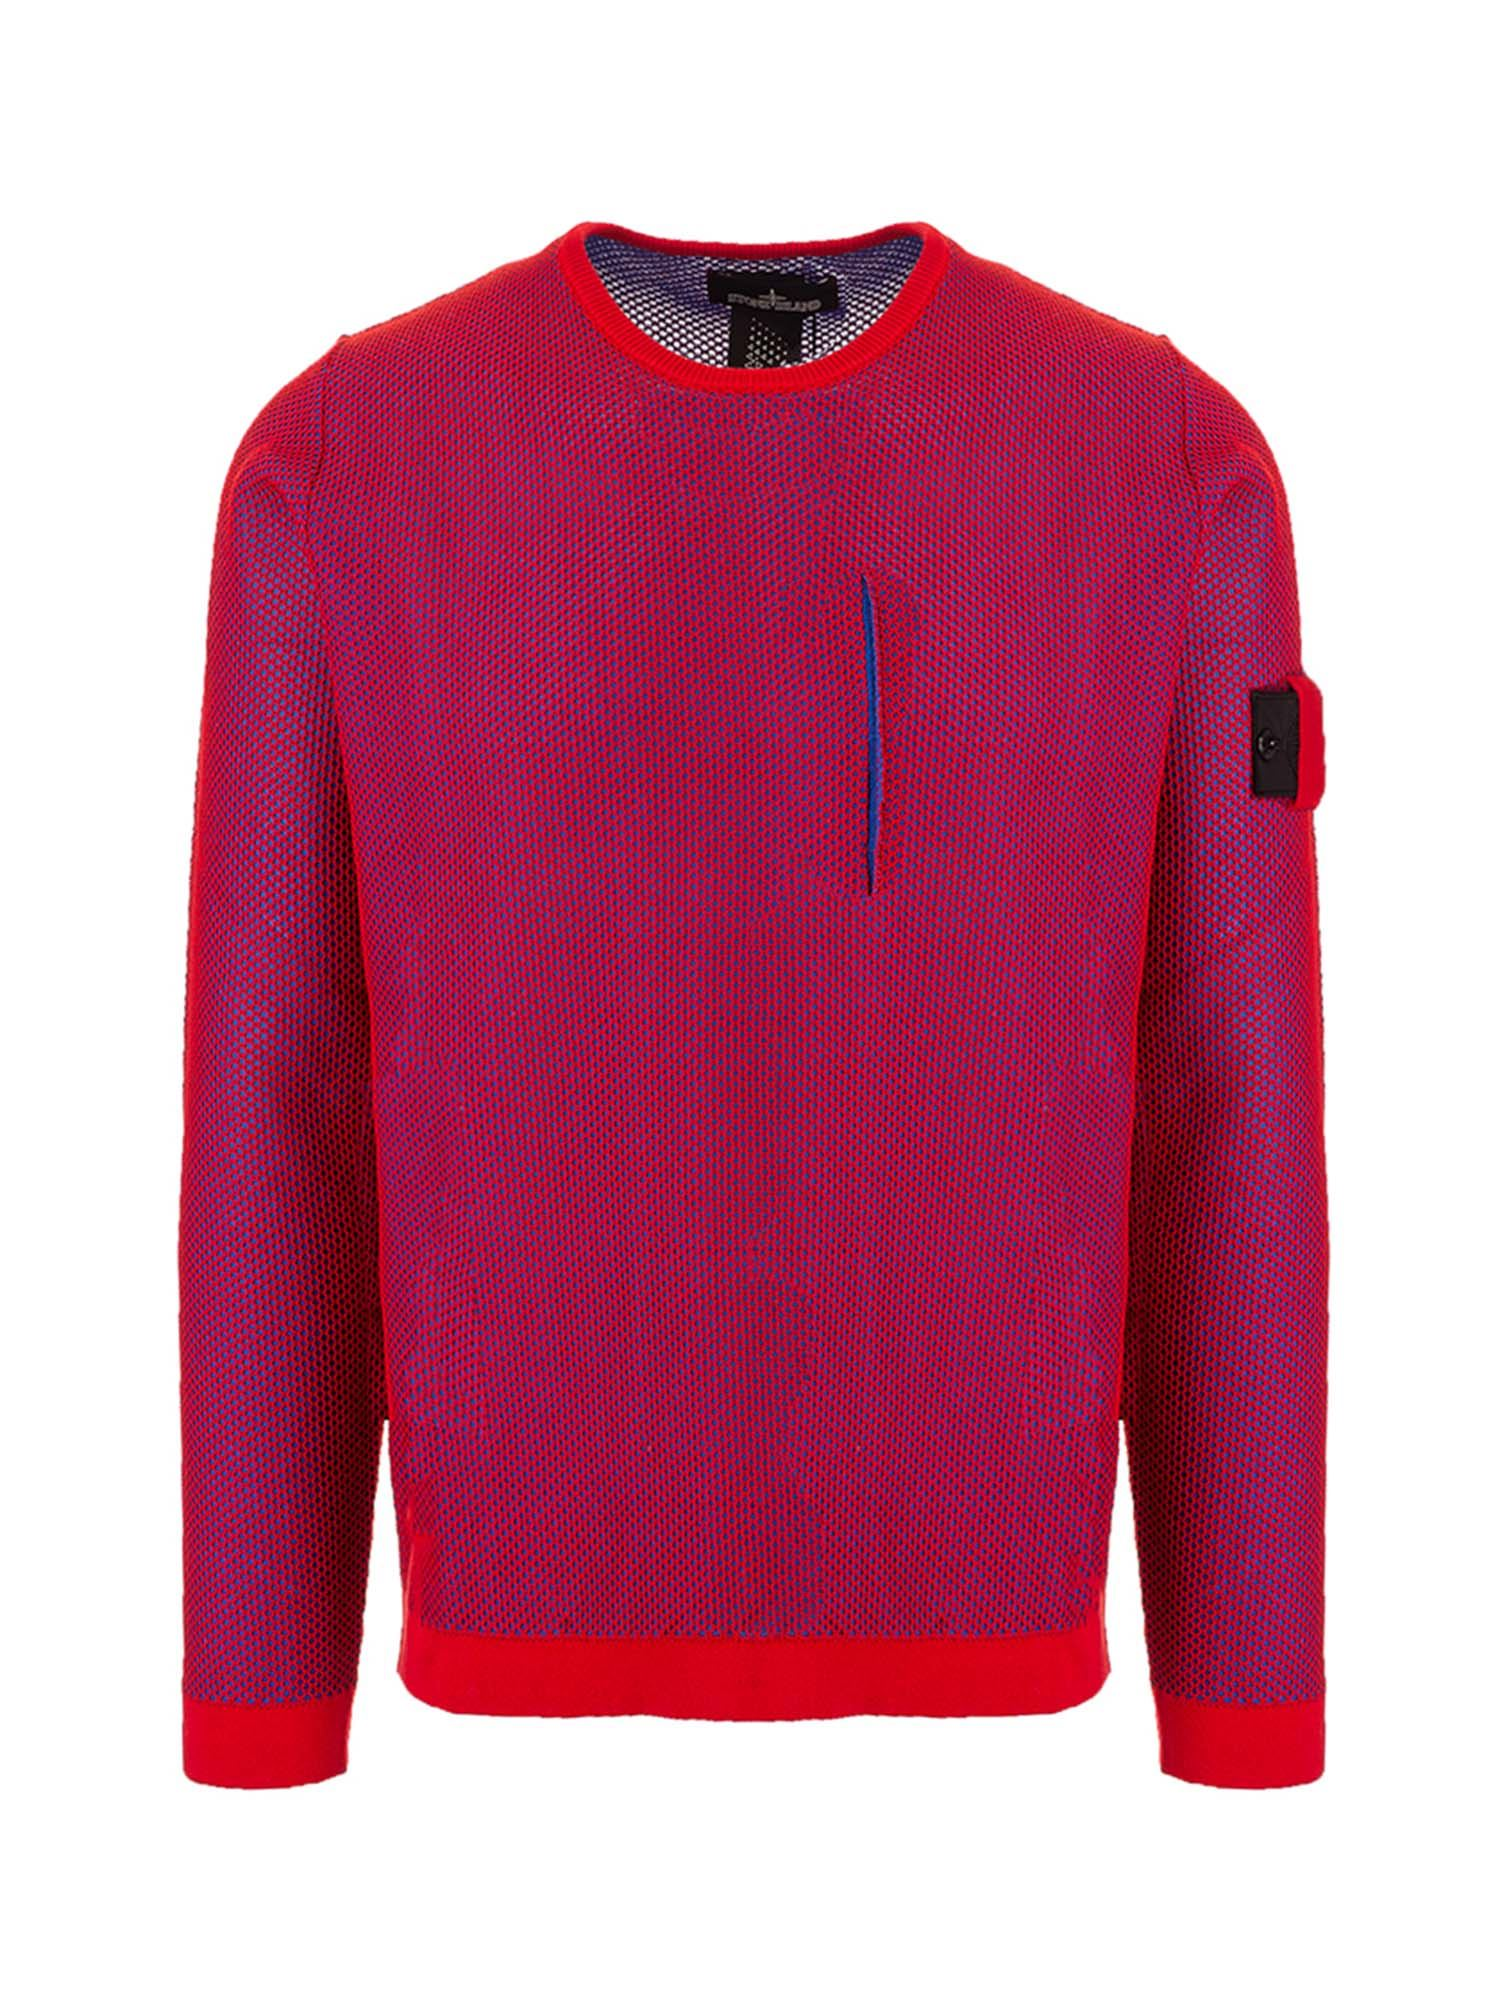 Stone Island Sweaters MESH SWEATER IN RED AND BLUE